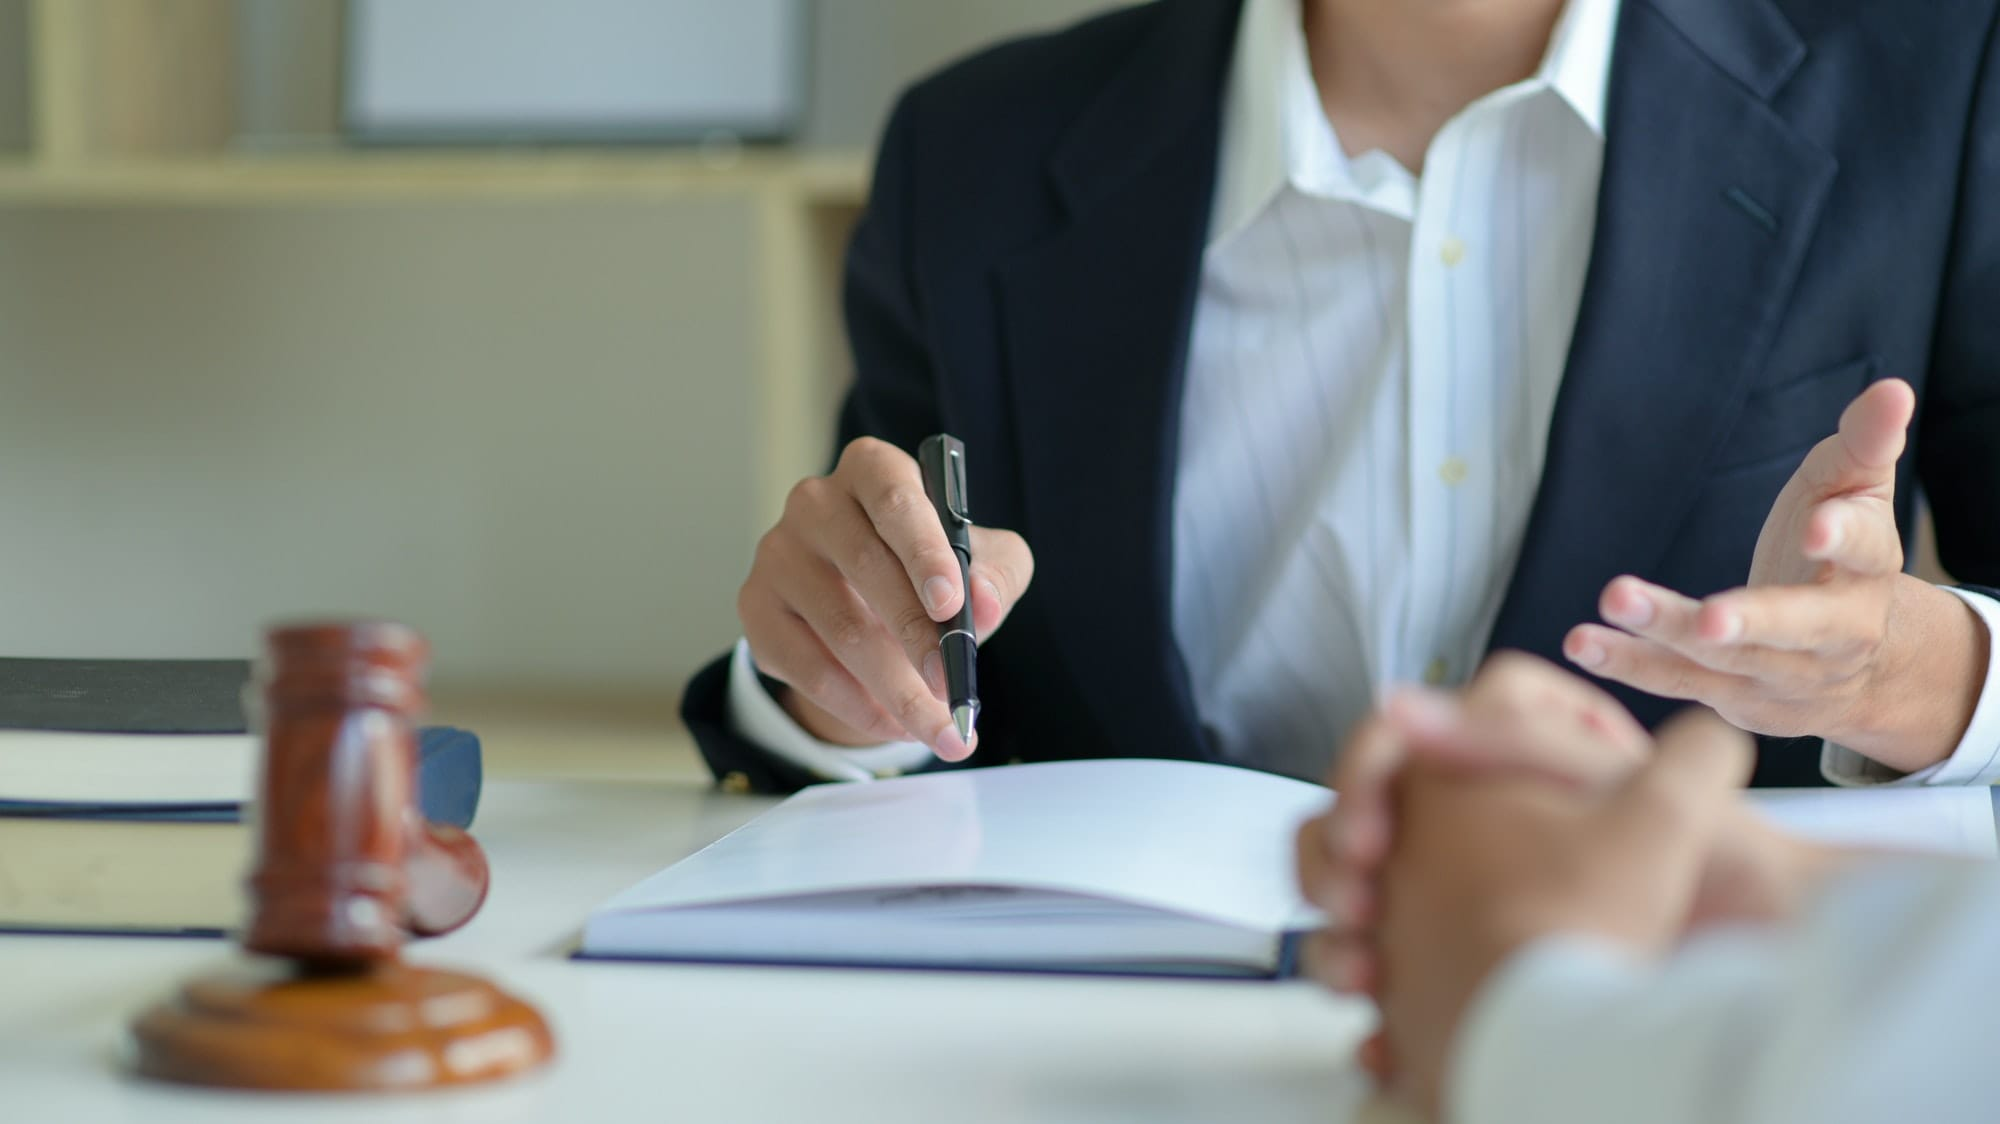 best family law attorney is giving legal advice to client regarding Vexatious Litigant wife